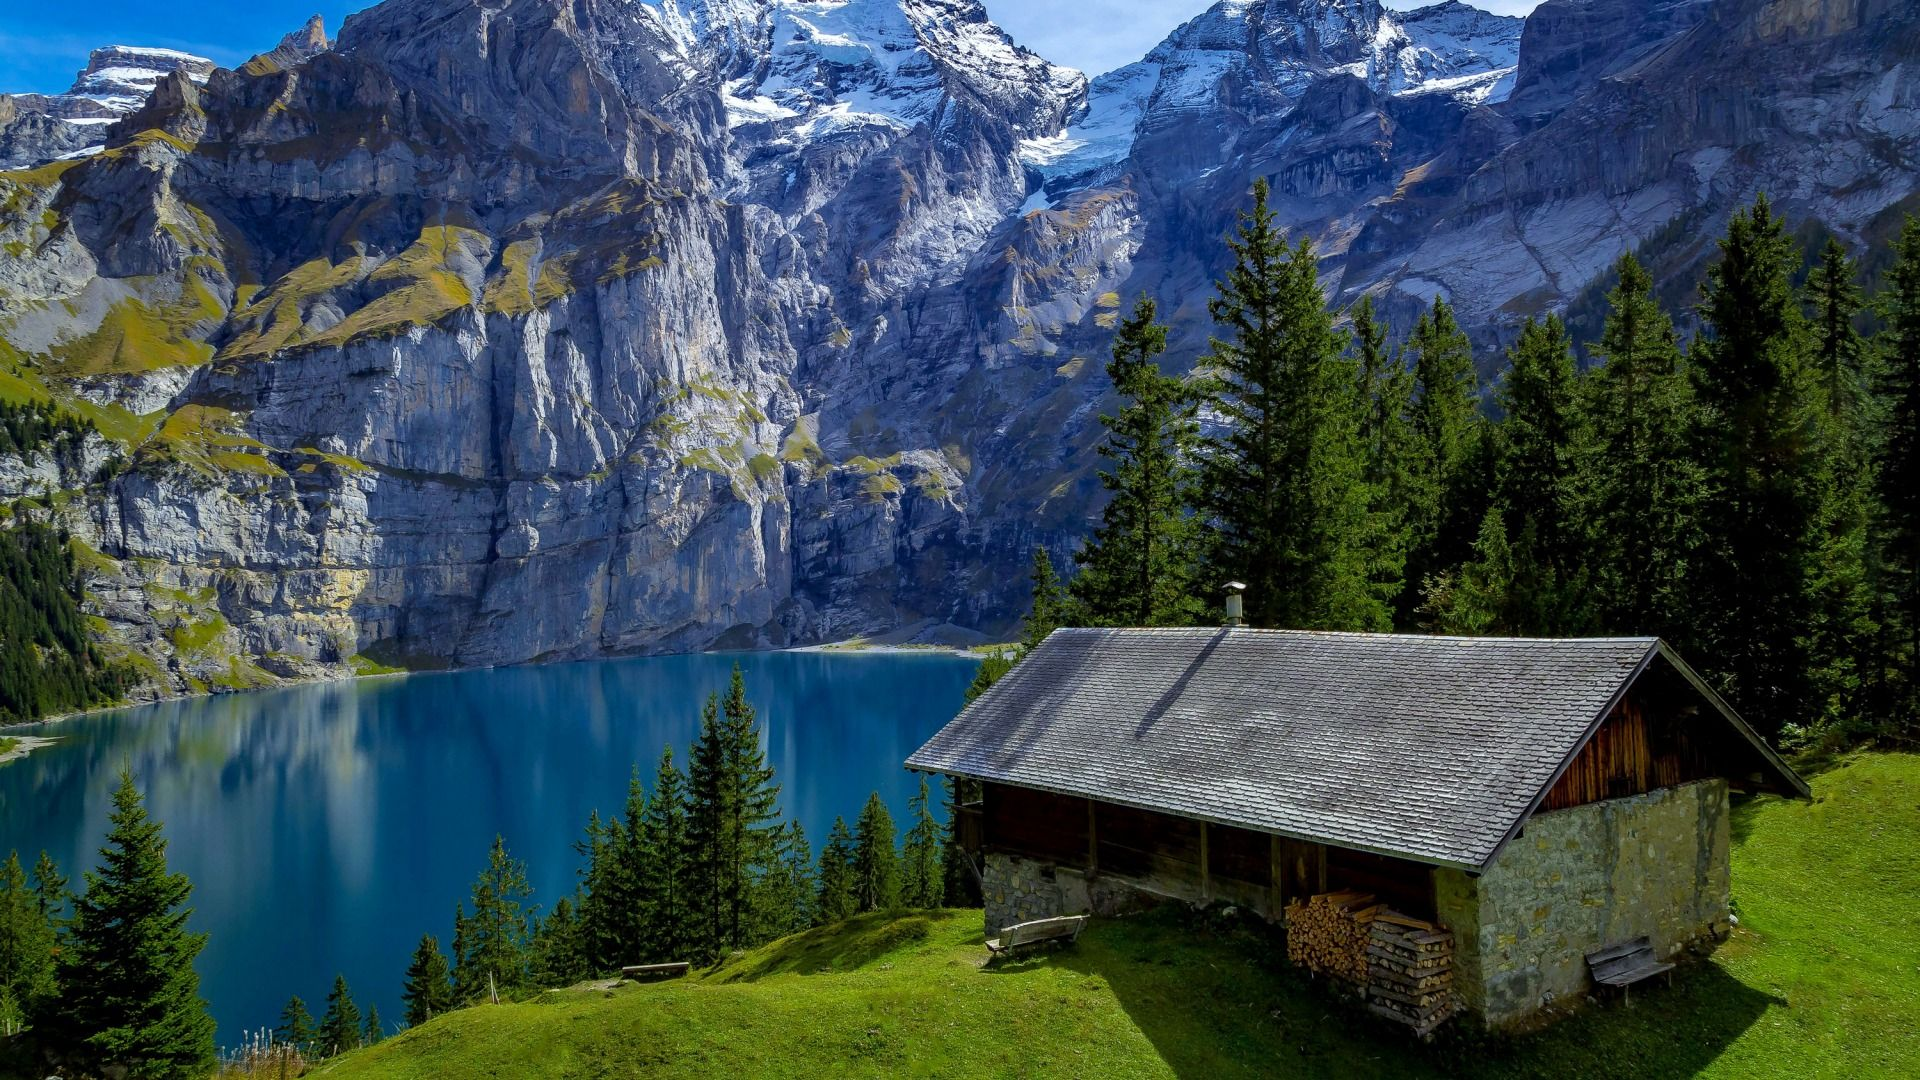 Download Wallpaper Sunny Switzerland Mountains Trees Benches Lake House Hill Forest Rocks Wood Section Landscapes In R Fotografi Alam Fotografi Alam